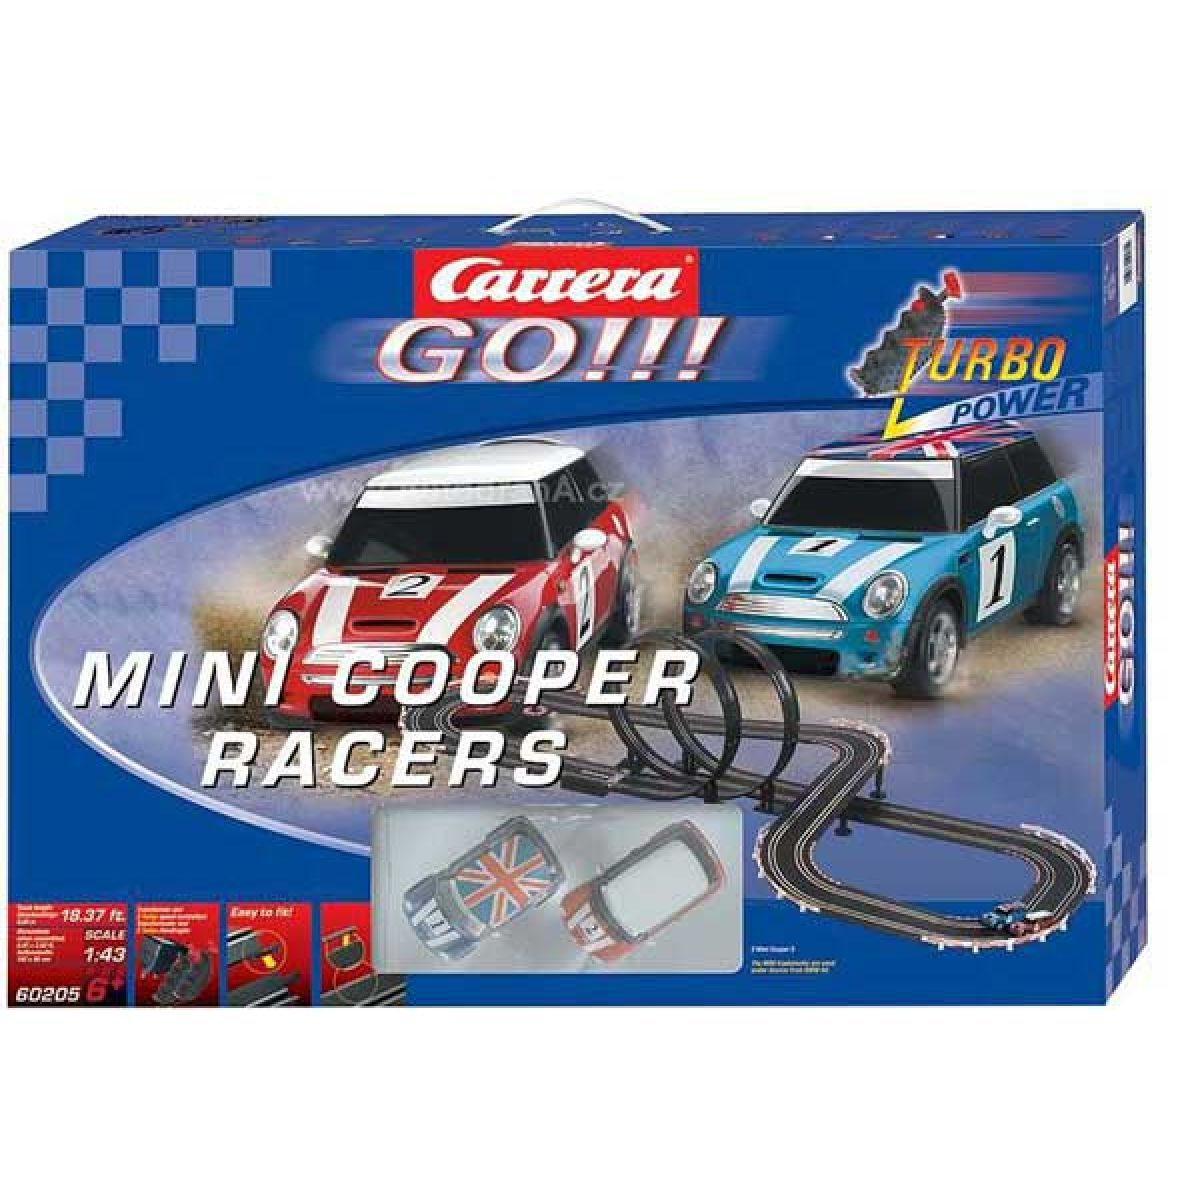 Mini Cooper Racers